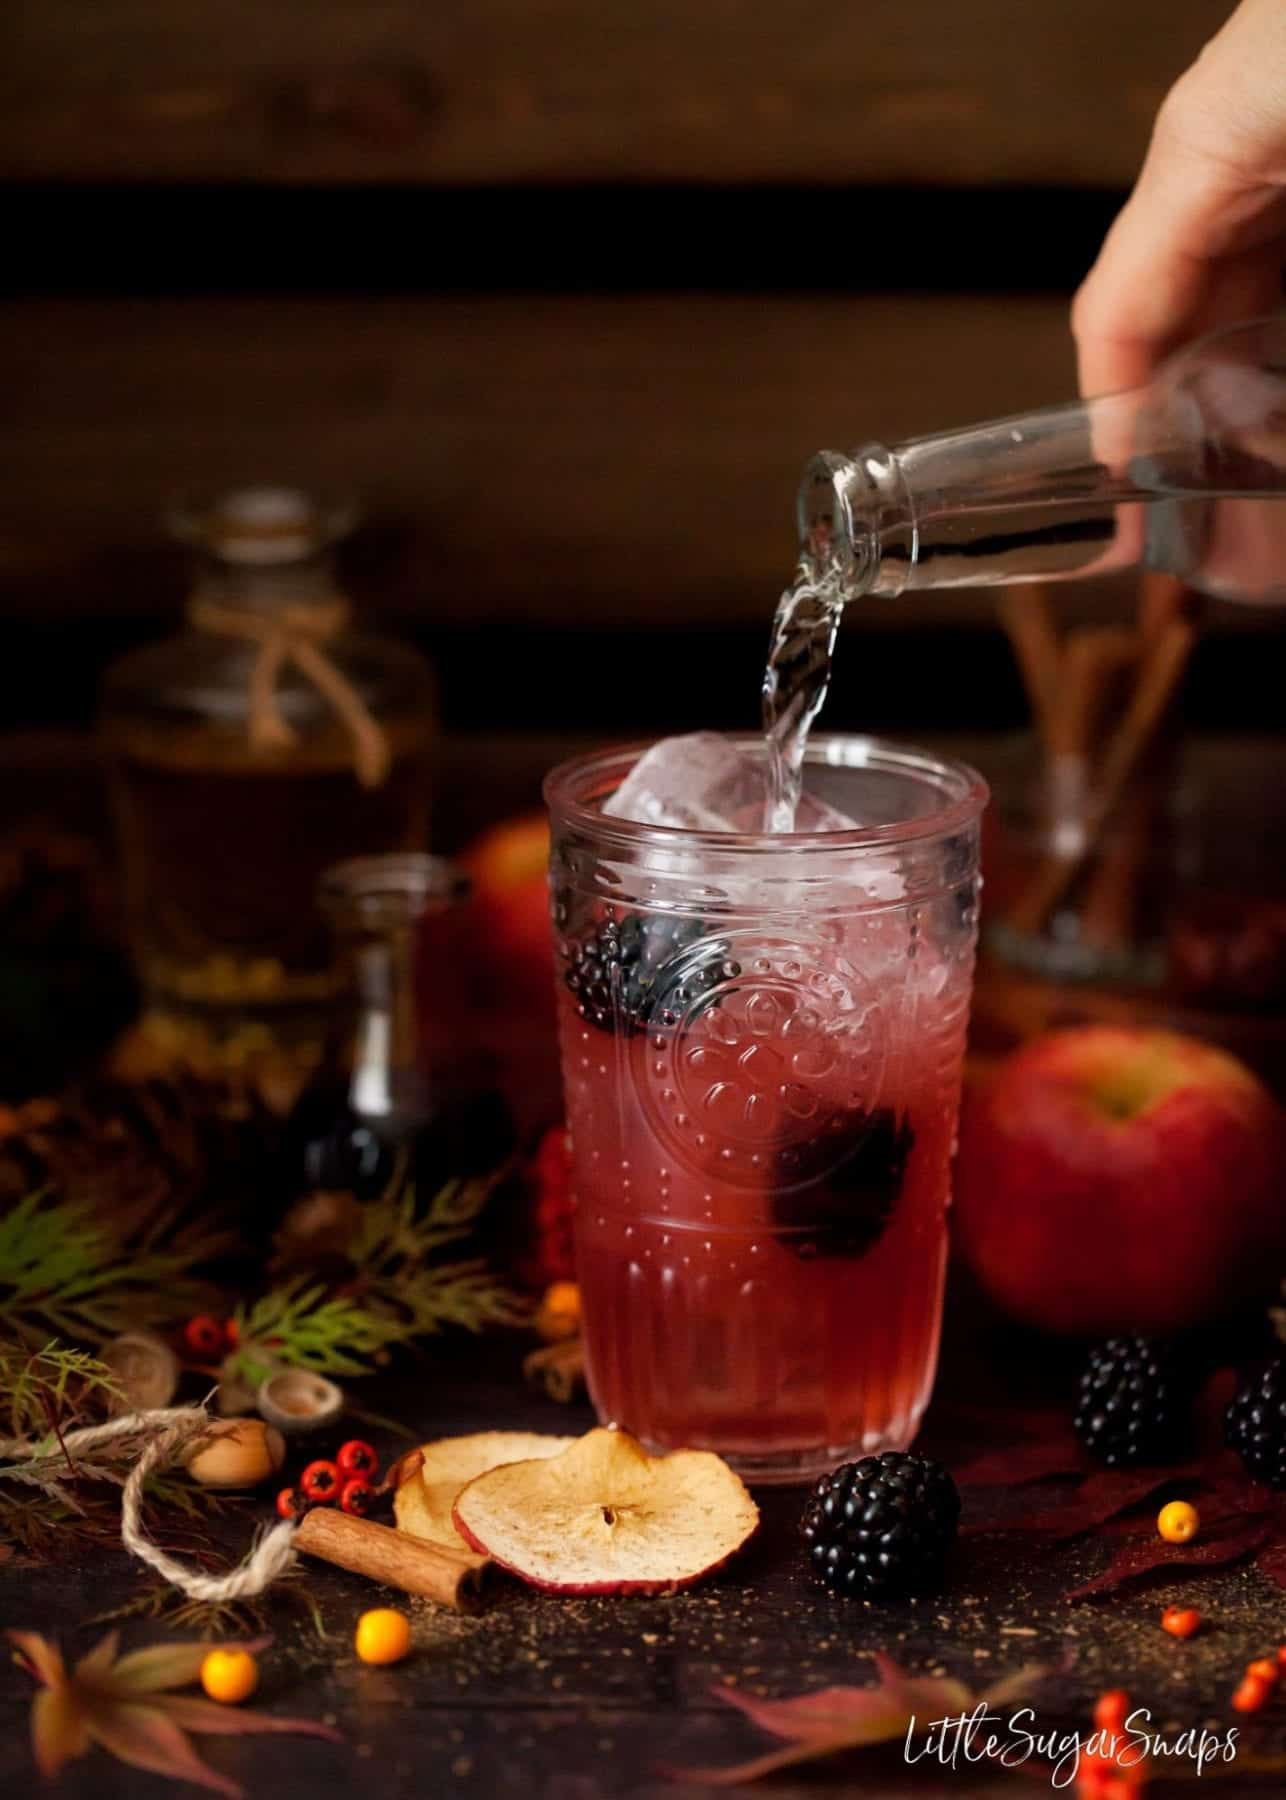 Person pouring tonic water into and autumnal flavoured drink.